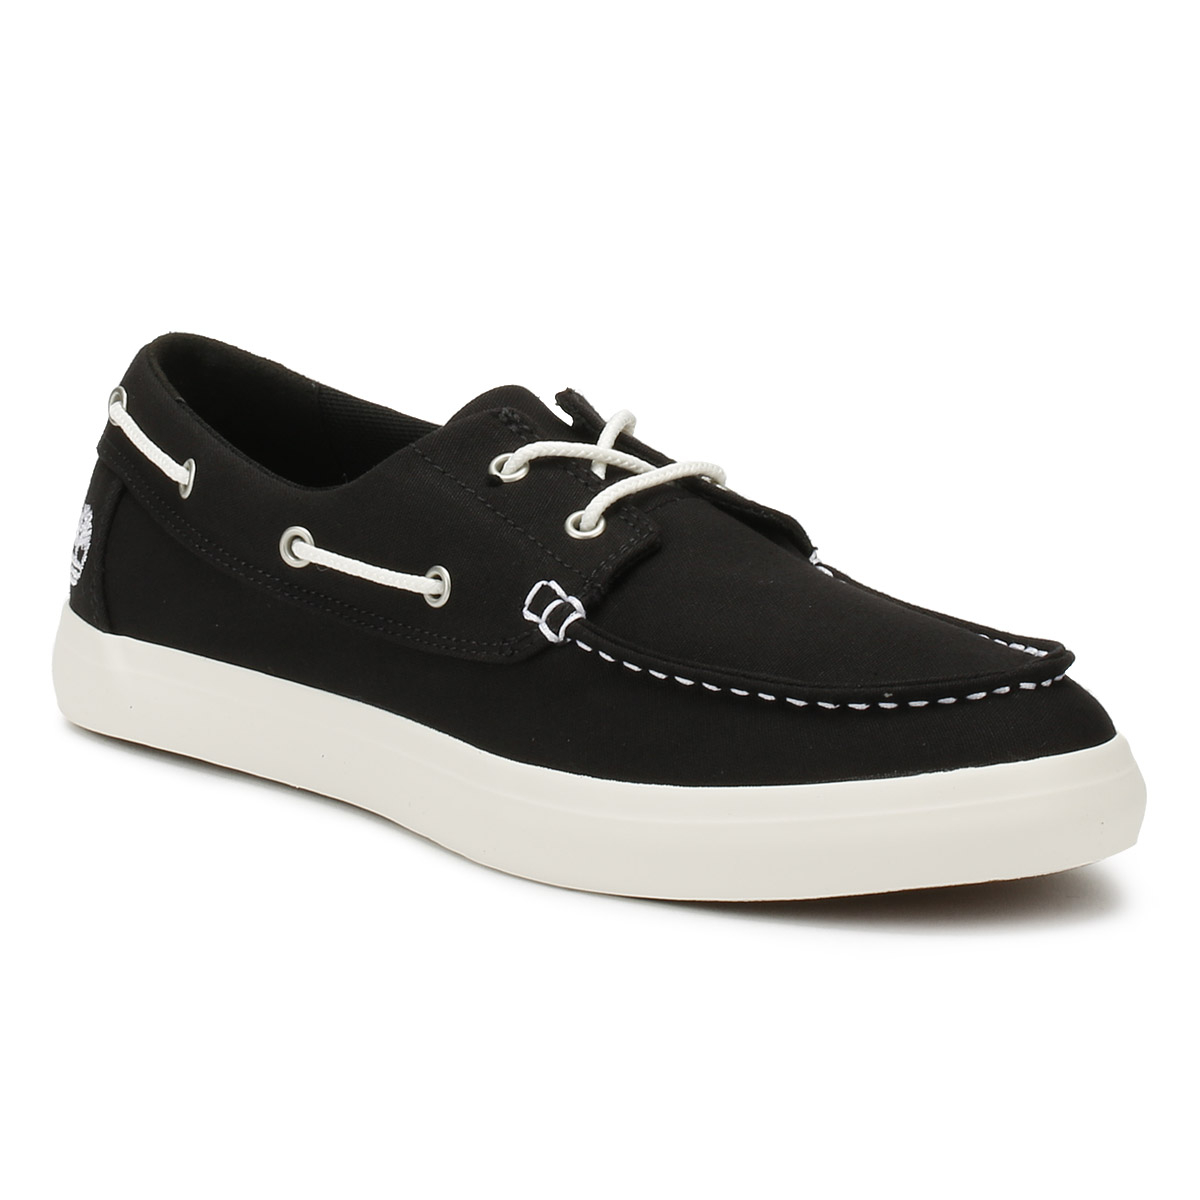 Timberland-Mens-Boat-Shoes-Black-Union-Wharf-Canvas-Lace-Up-Casual